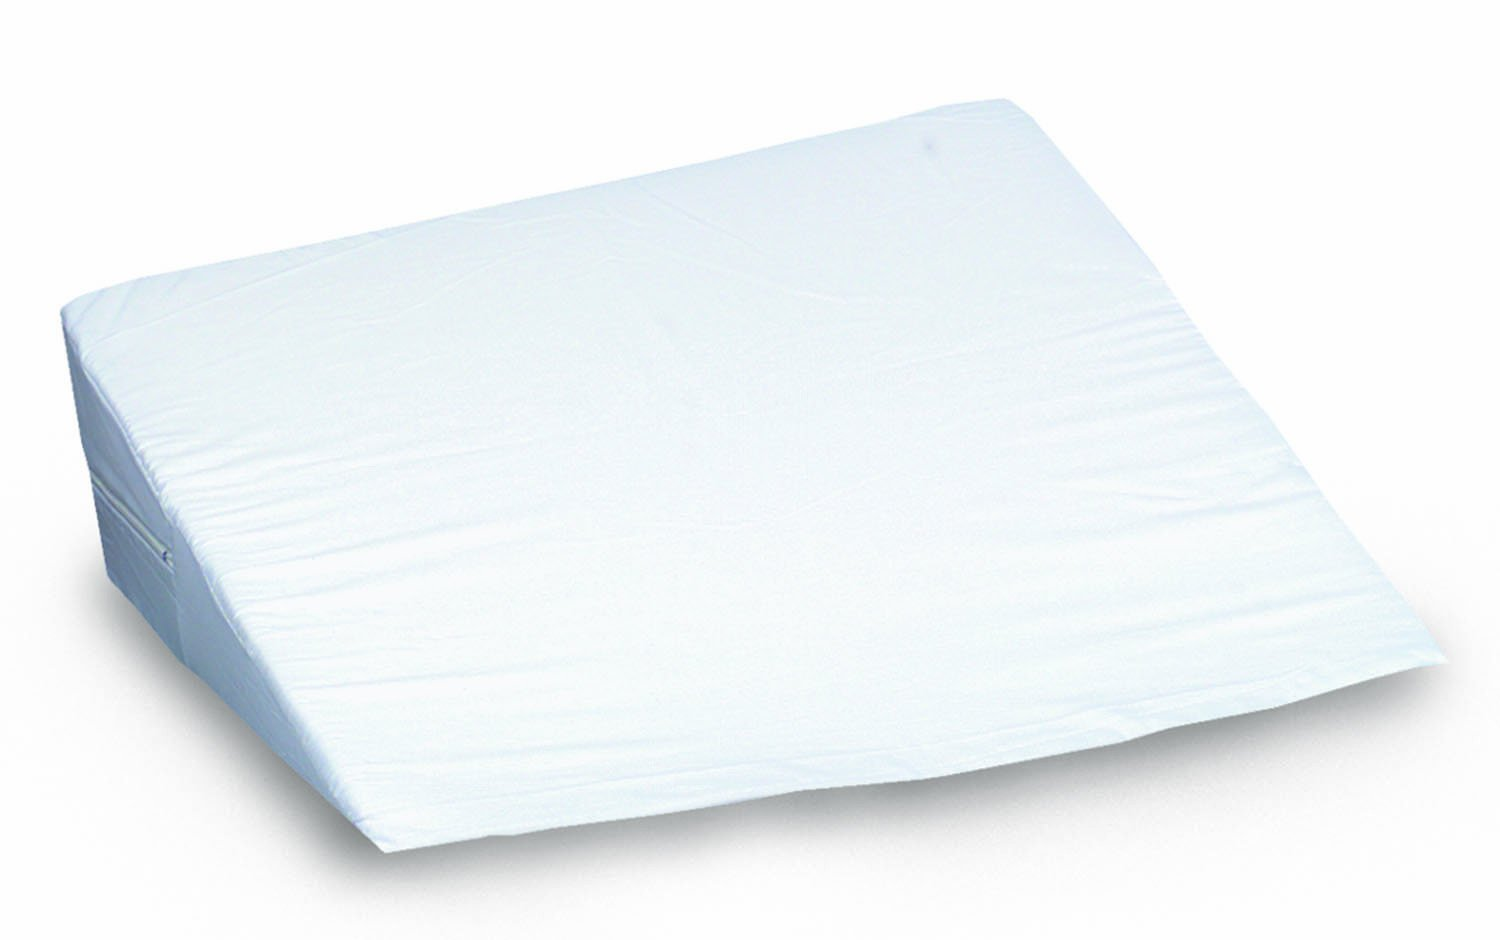 Mabis Dmi Healthcare Foam Bed Wedge for Head, Foot or Leg Elevation, Helps Ease Respiratory Problems and Reduces Neck and Shoulder Pain, Washable Cover, 10 inch x 24 inch x 24 inch, White